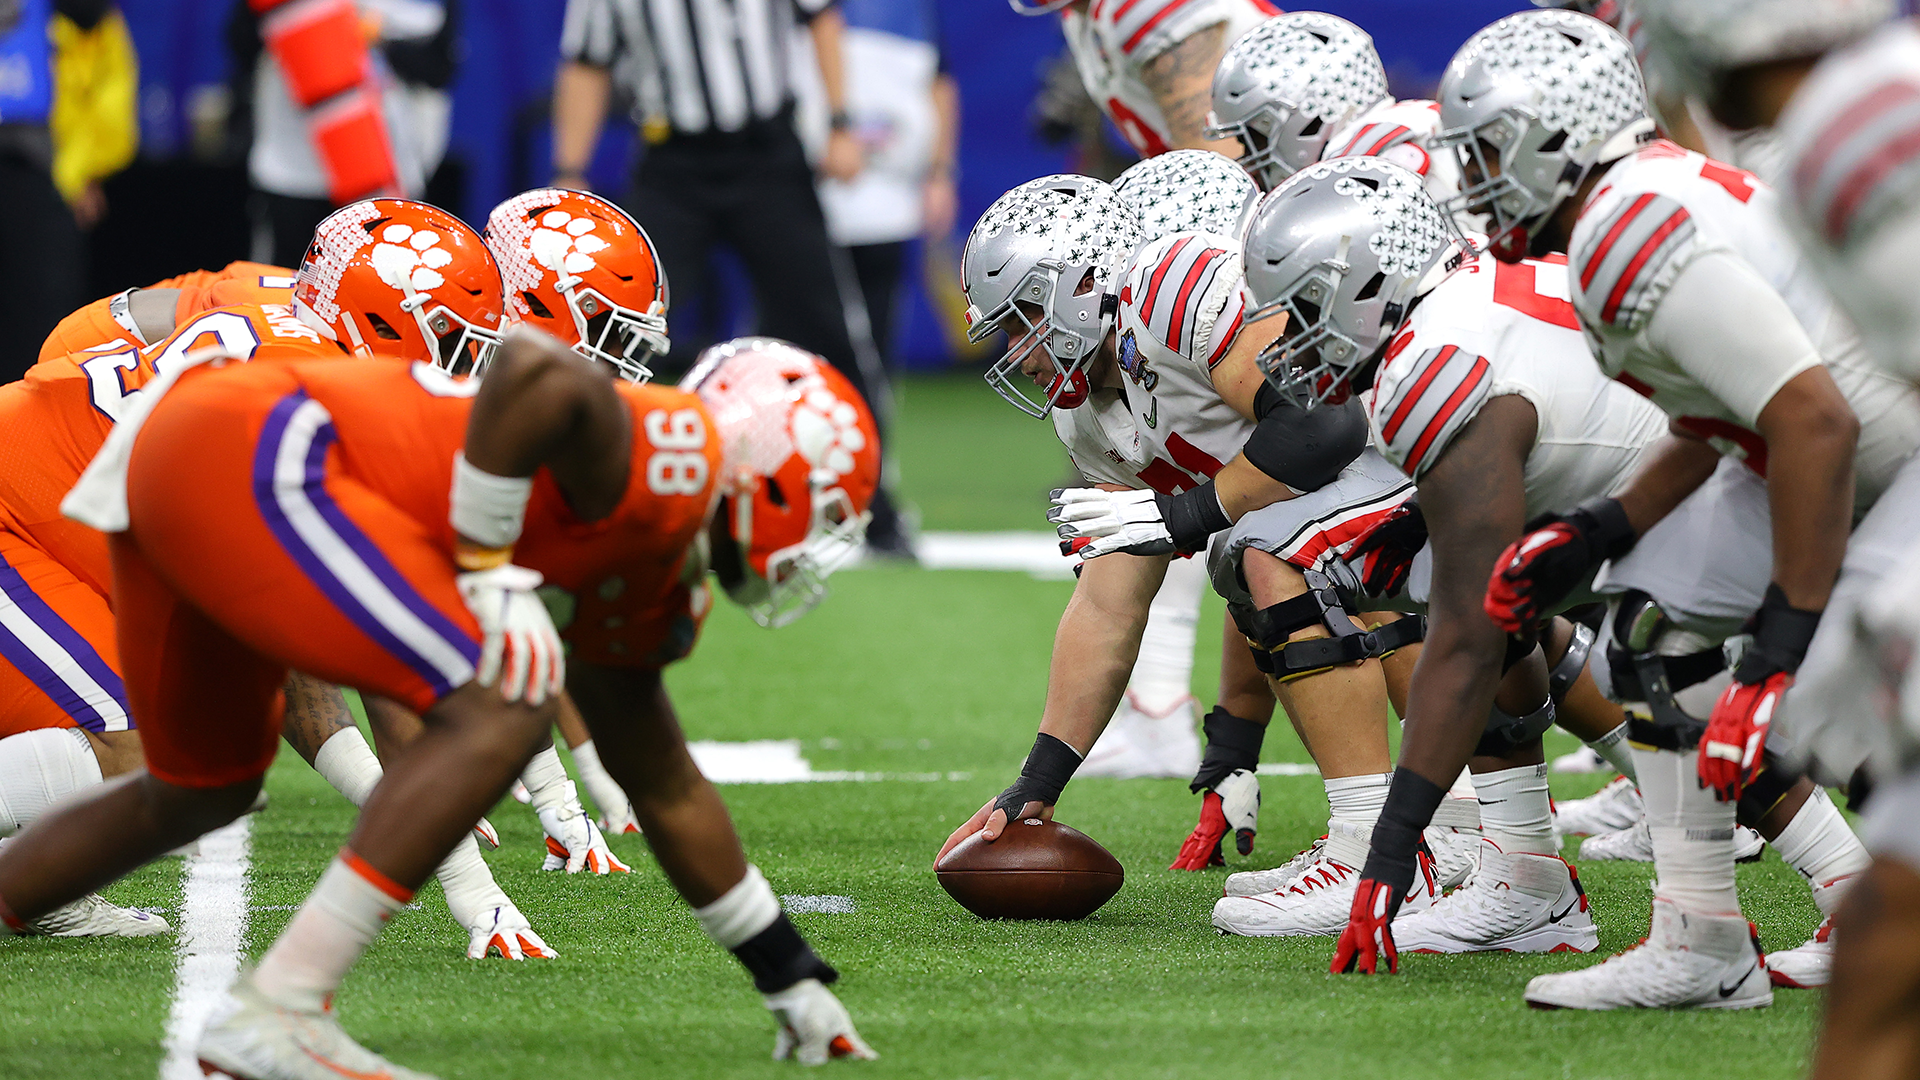 The proposed expansion of the college football playoff gives the NCAA a dozen reasons to cut back the regular season by one game.